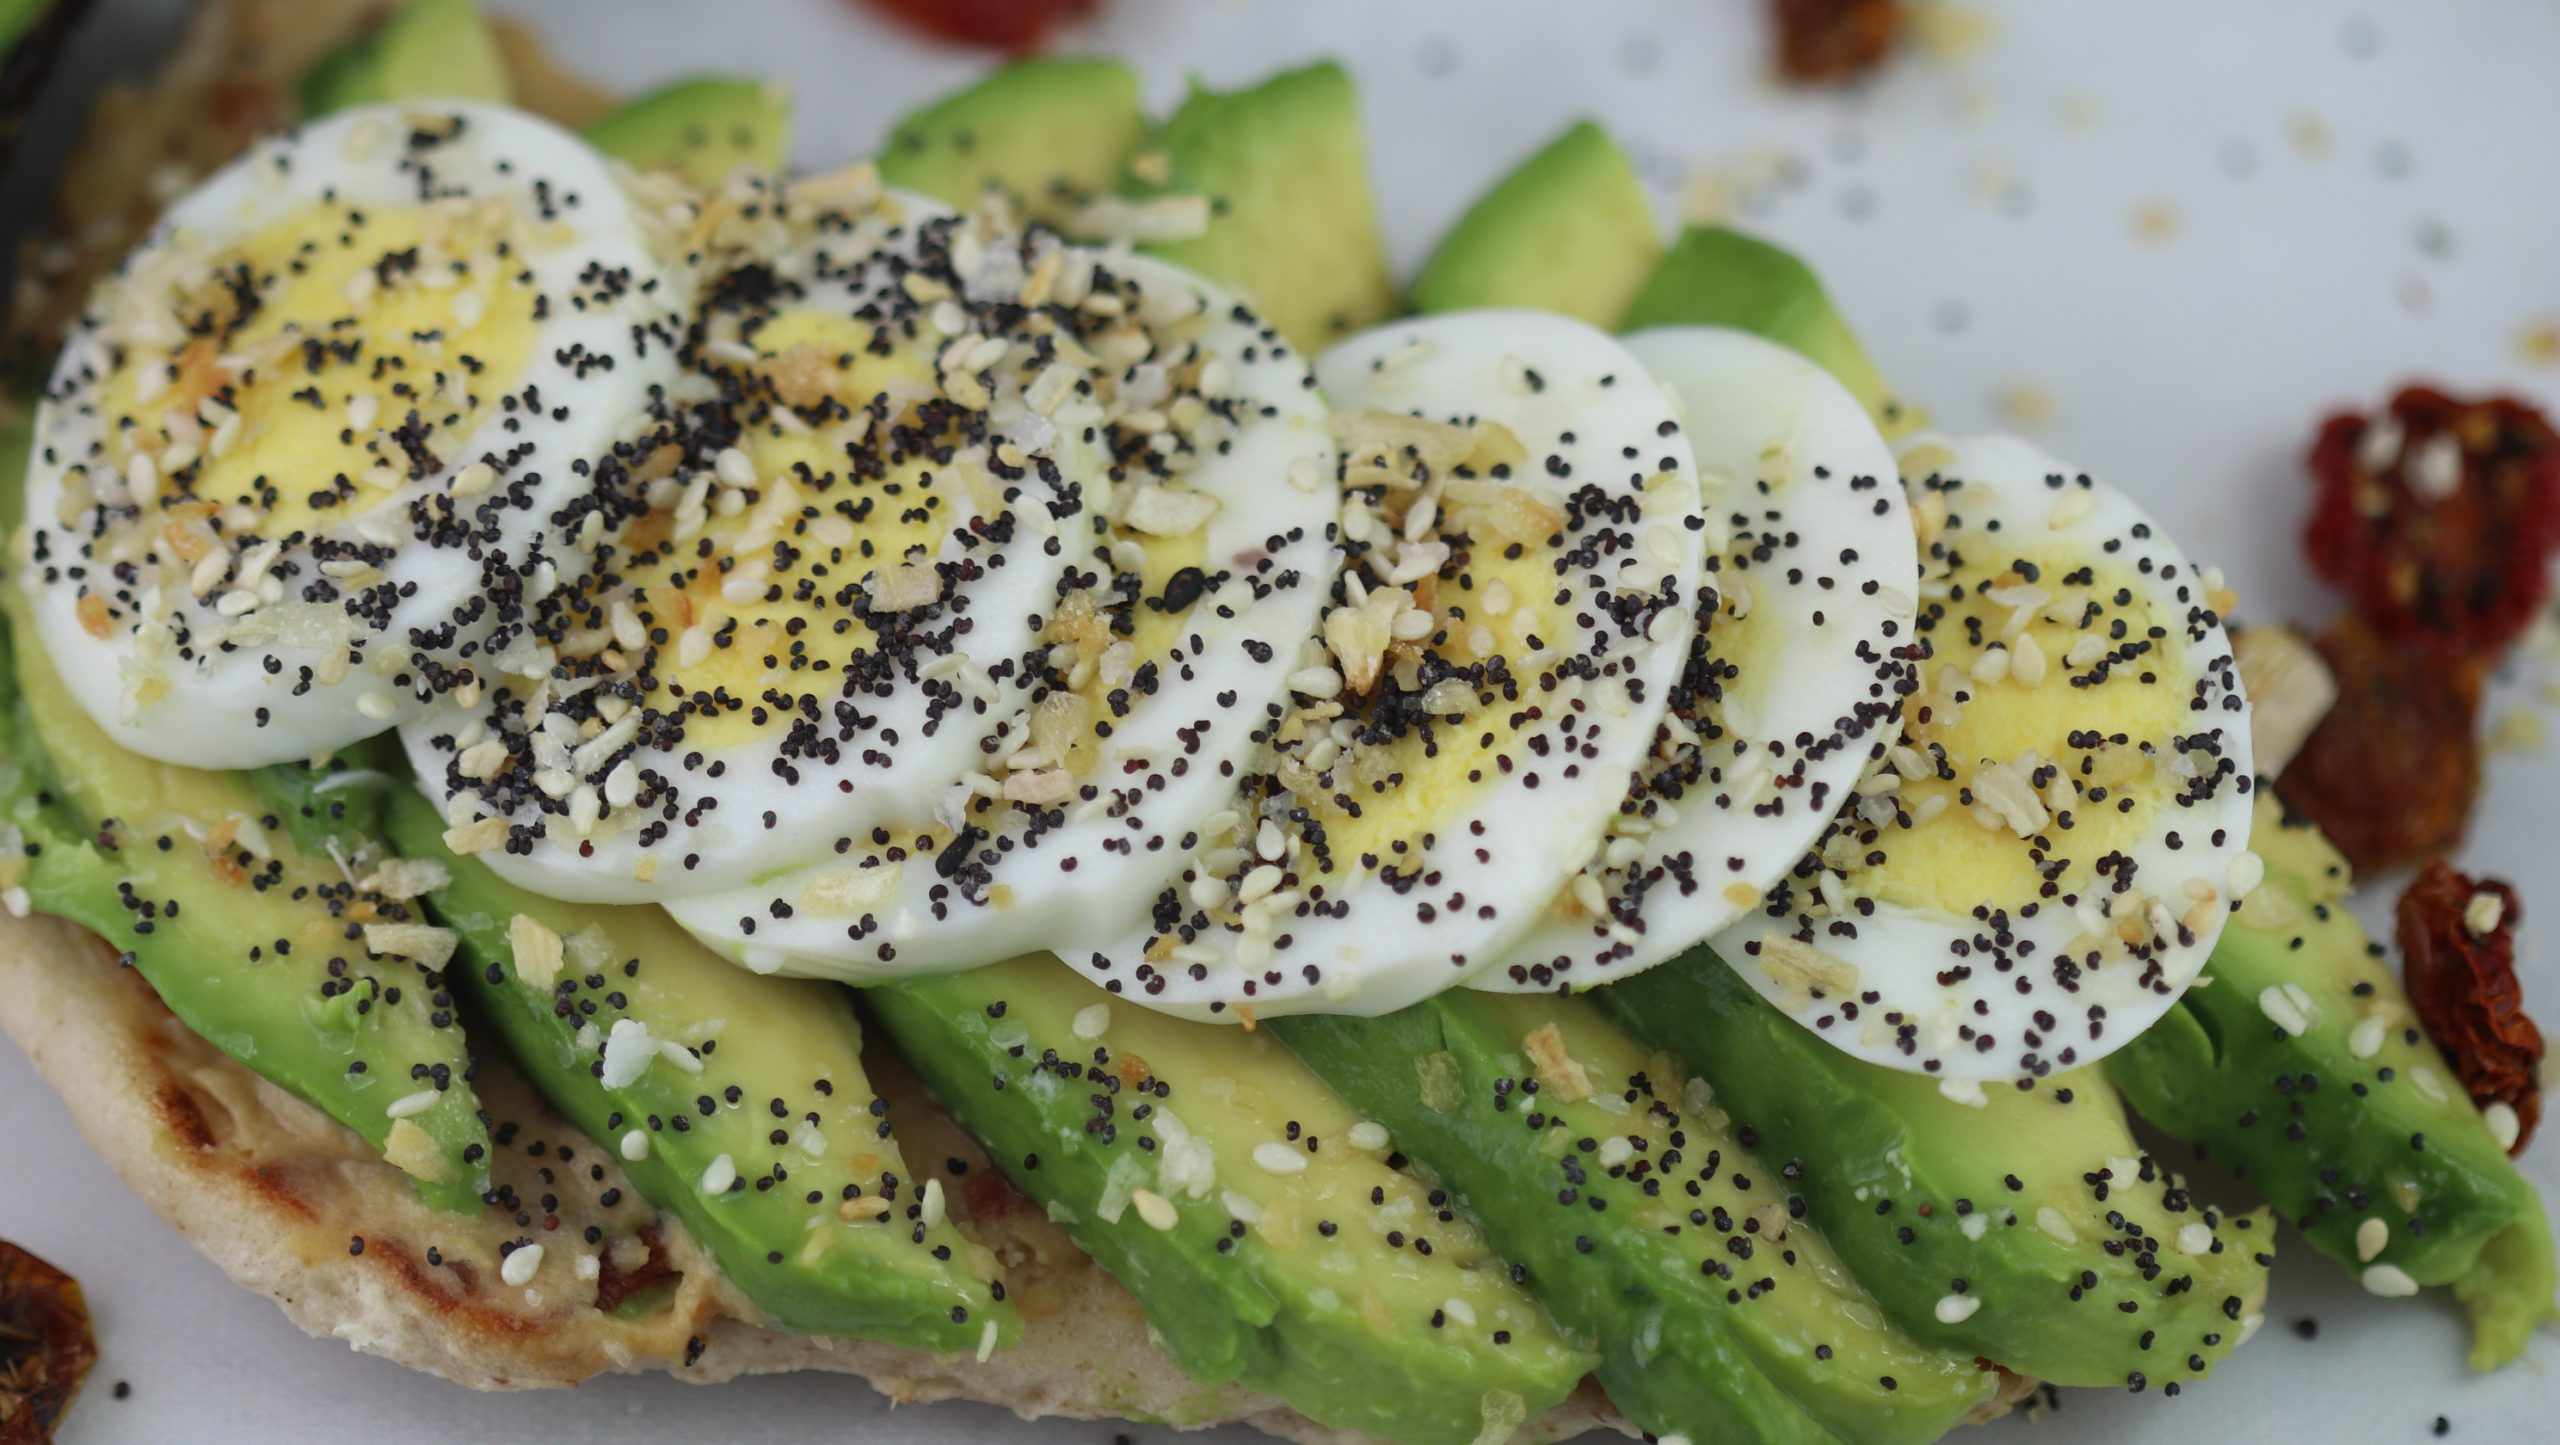 Toasted Naan with Avocado and Egg sandwich.